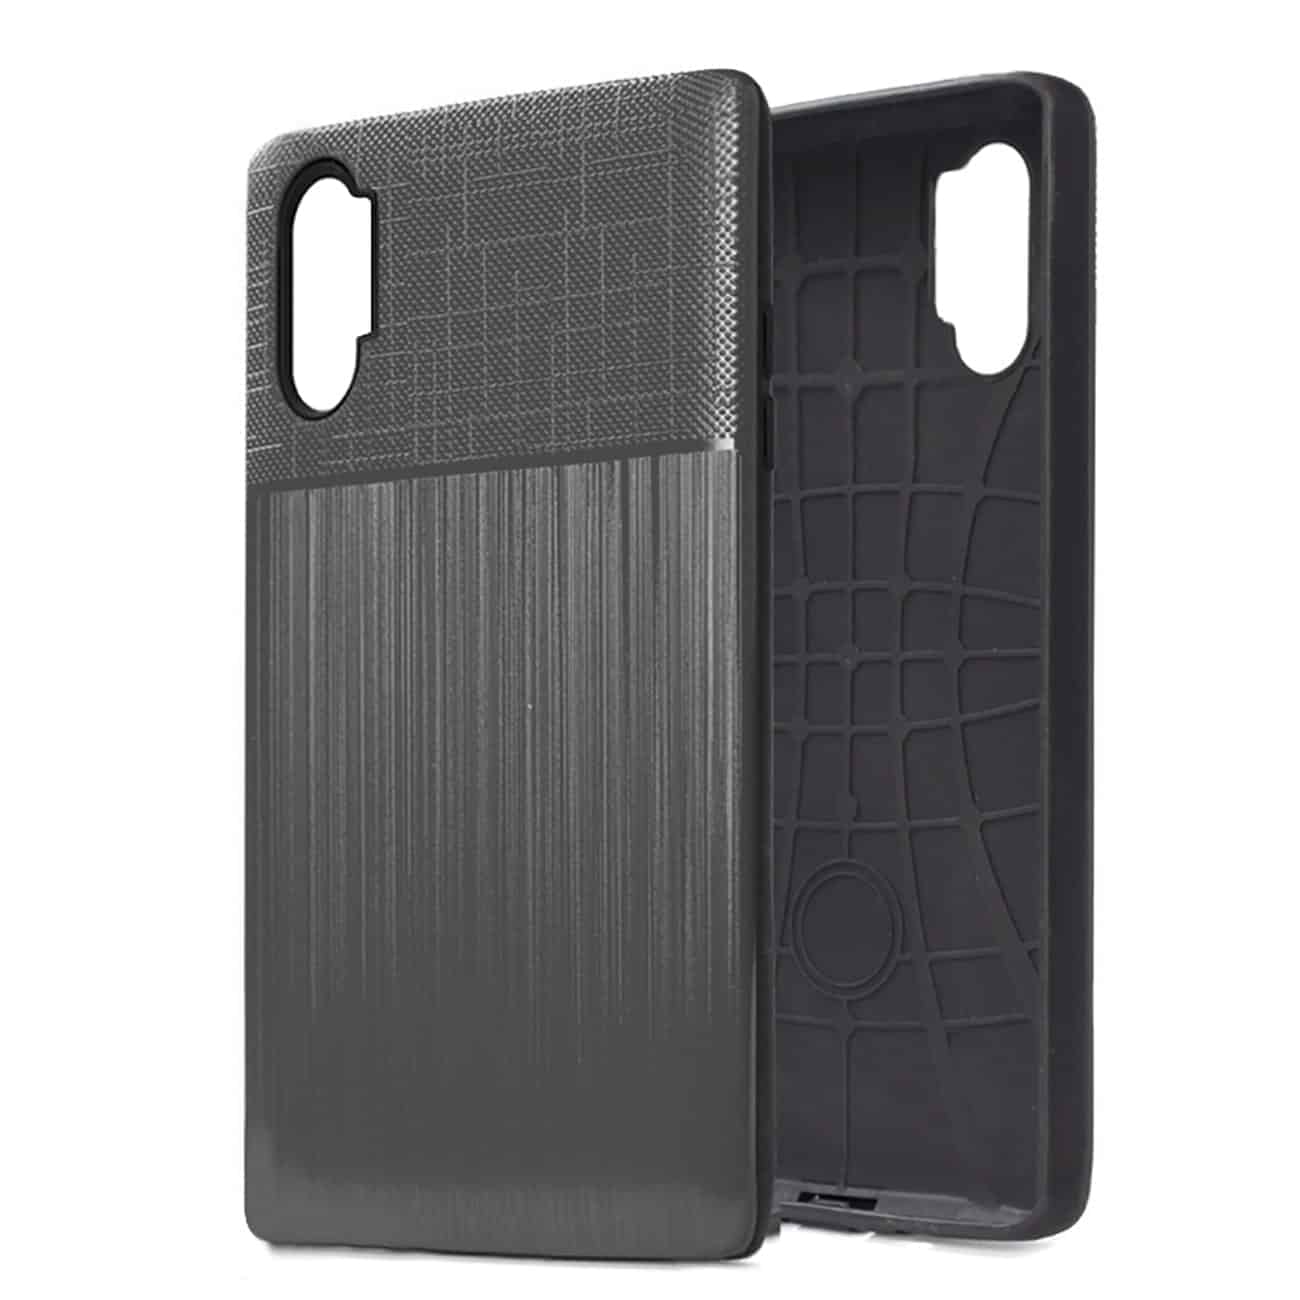 ISTIK SAMSUNG GALAXY NOTE 10 PLUS Lightweight Case In Gray